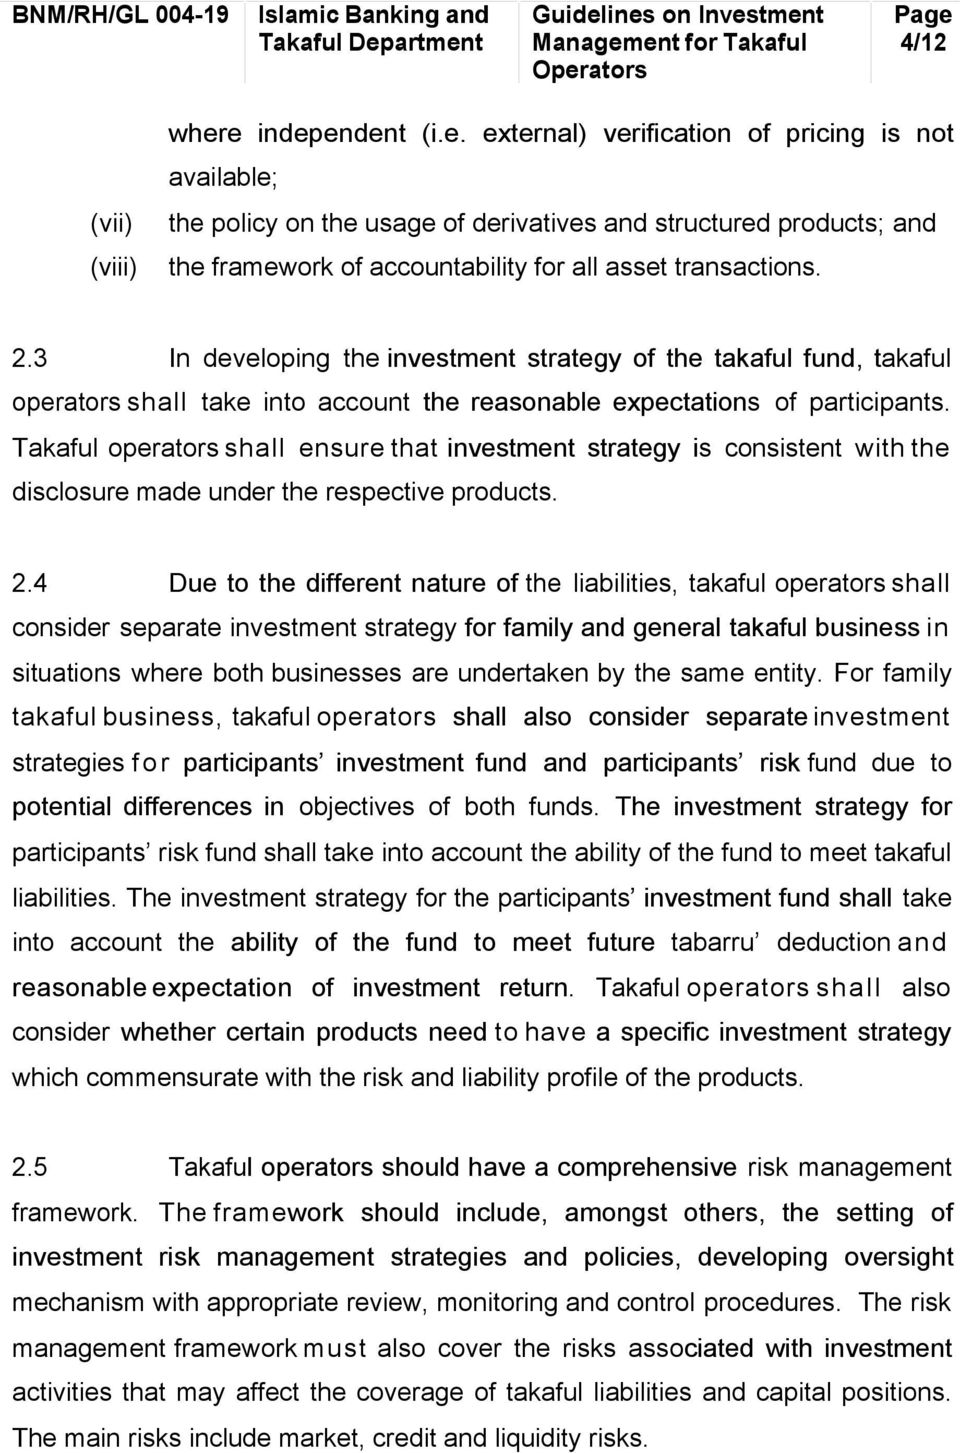 2.3 In developing the investment strategy of the takaful fund, takaful operators shall take into account the reasonable expectations of participants.